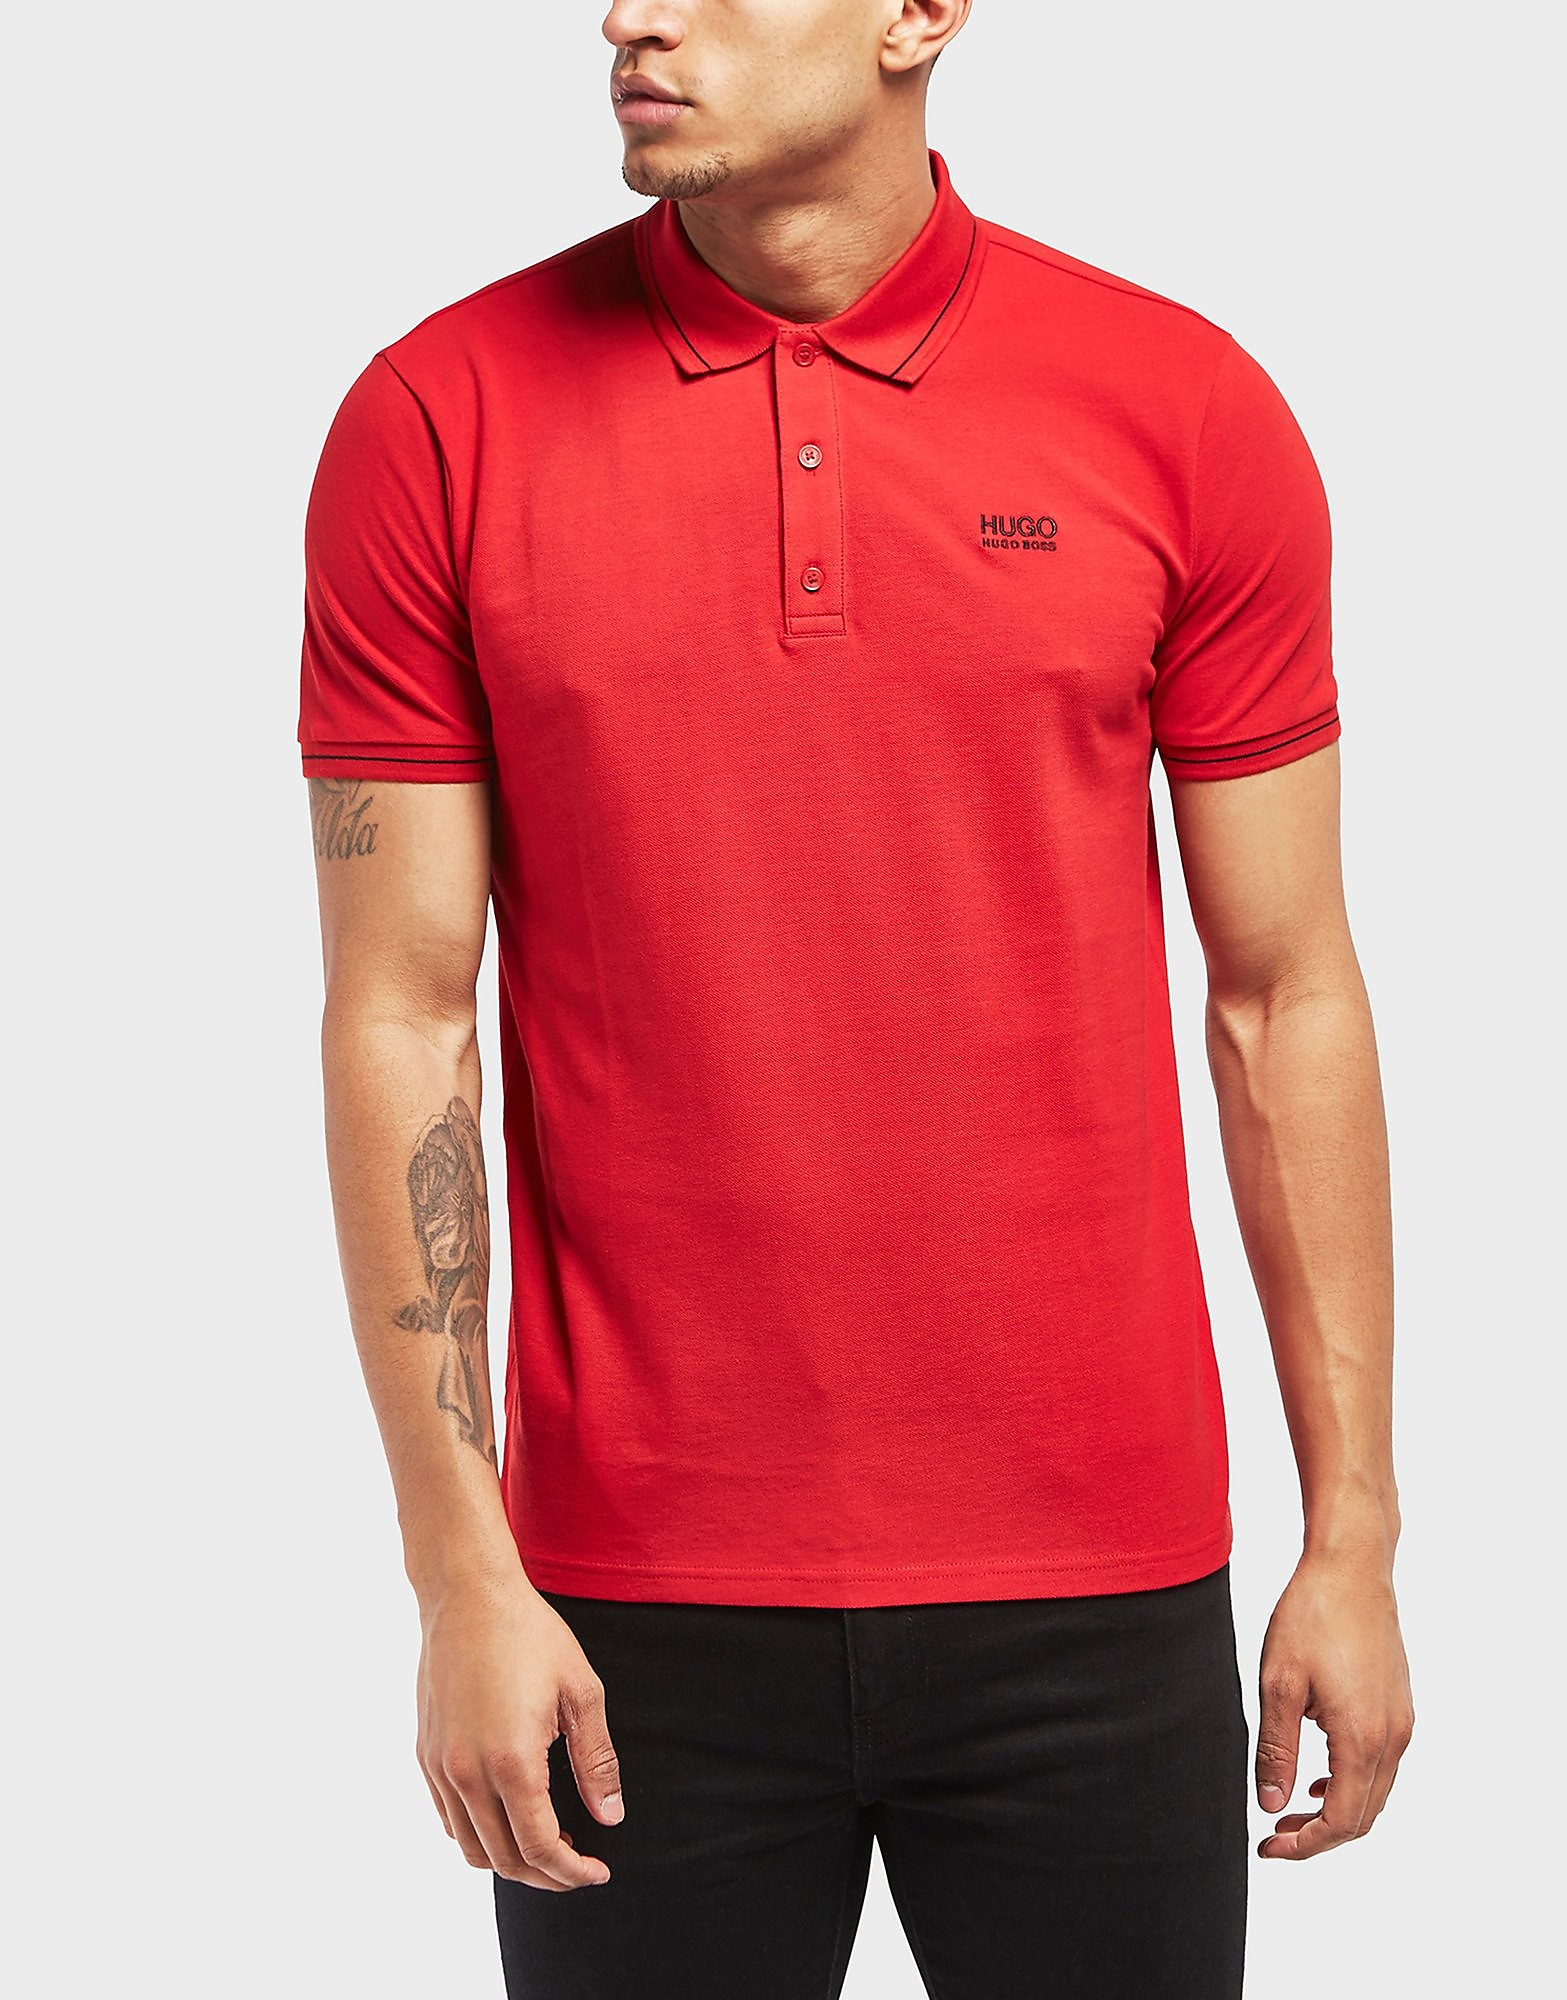 HUGO Daruso Short Sleeve Polo Shirt